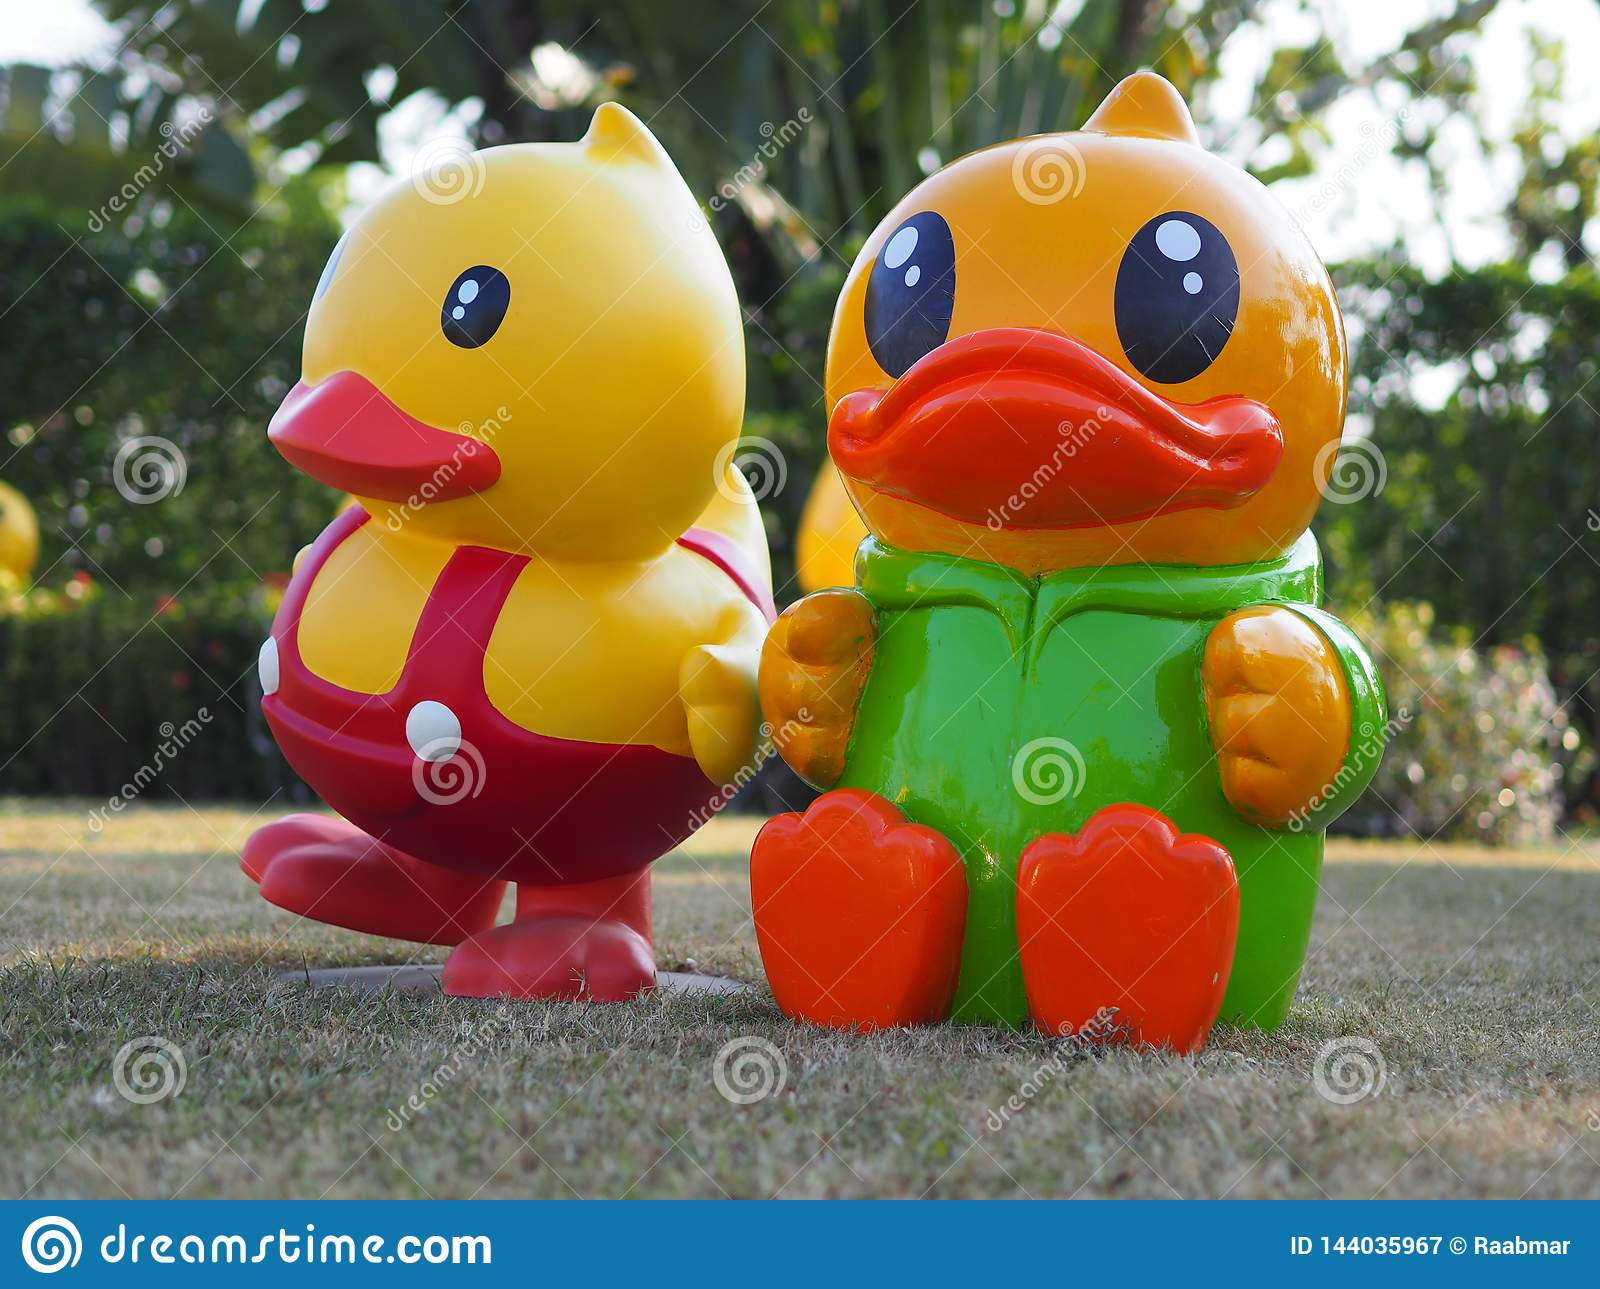 Two yellow ducks in Udon Thani Thailand